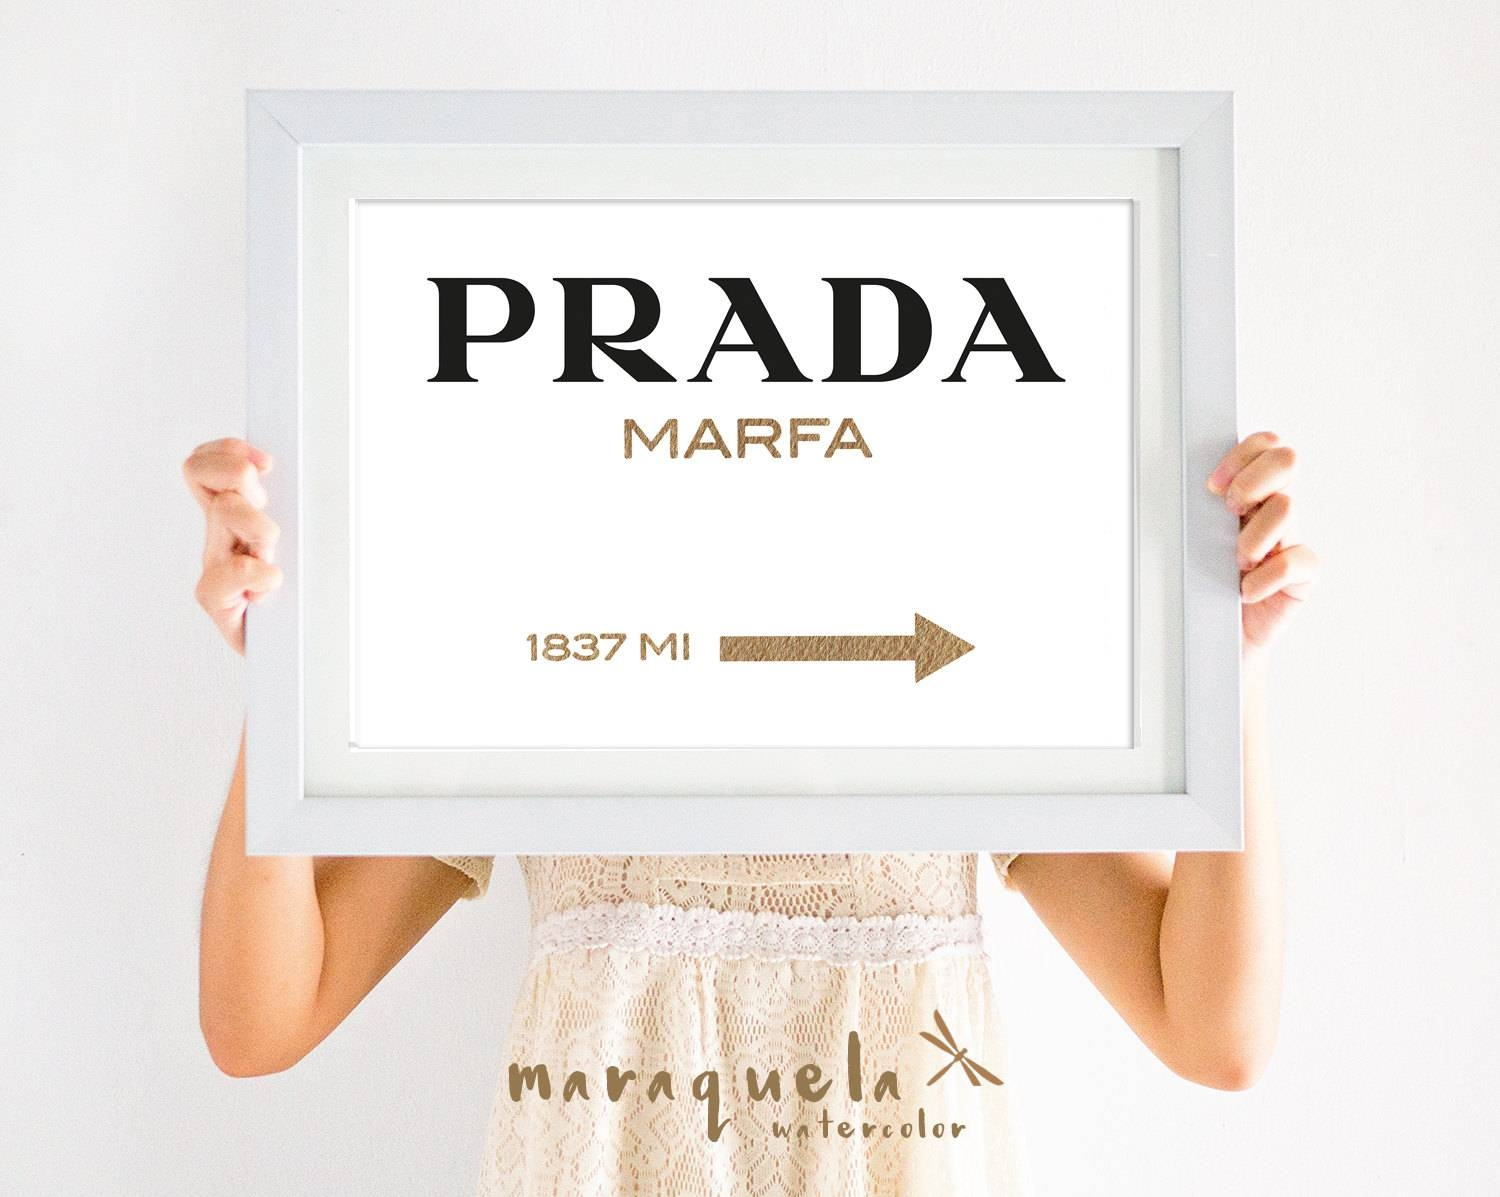 Original Prada Marfa Watercolor Golden Letters Inspired Wall Art Pertaining To Recent Prada Wall Art (View 17 of 25)